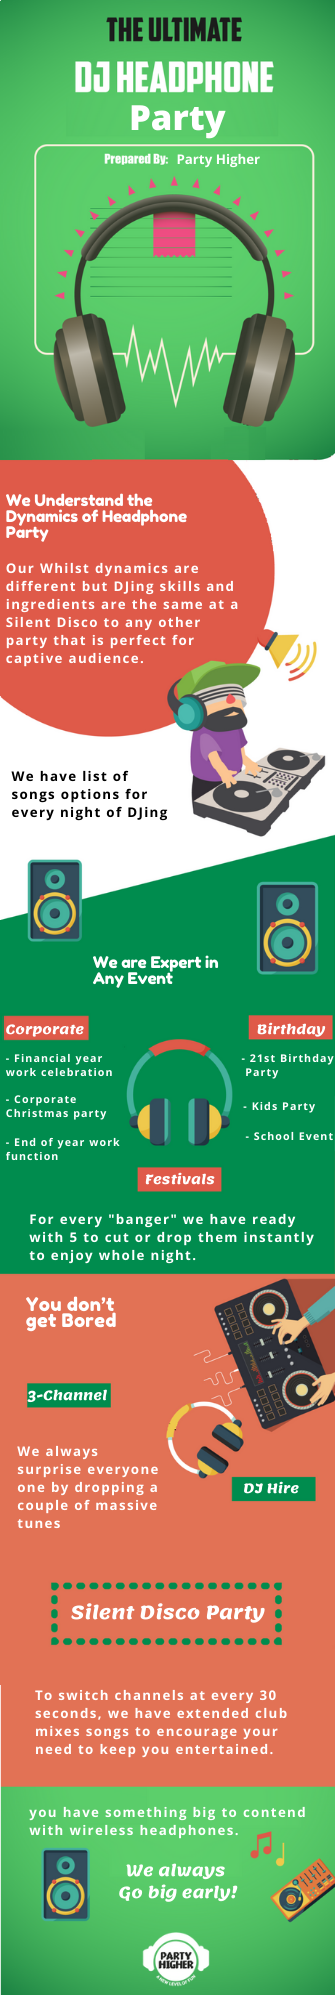 5 Reasons why Hire Professional DJ with Party Higher